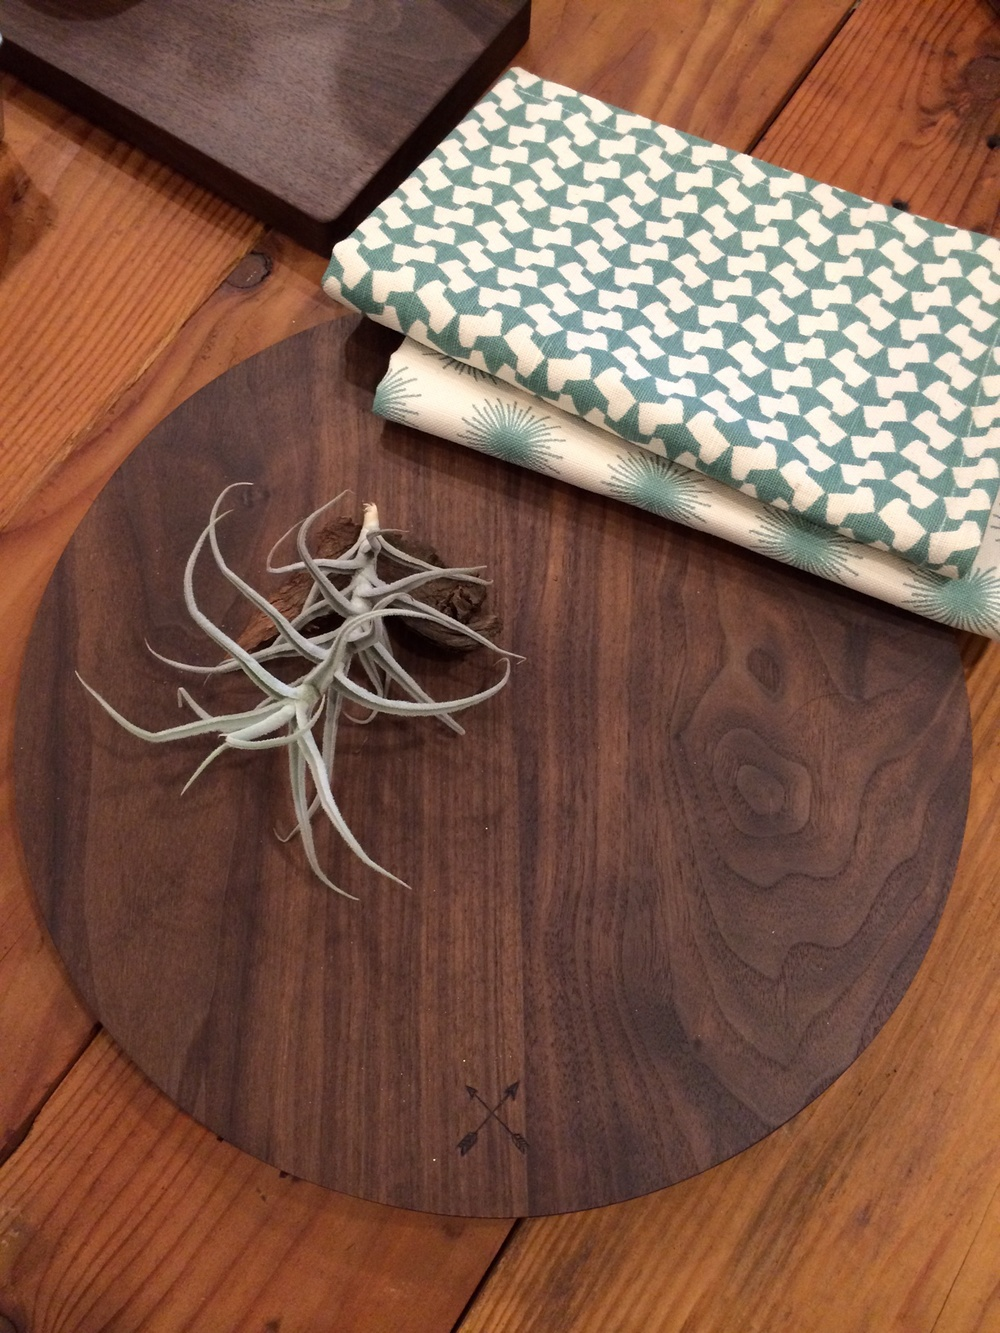 Round Board with Arrows (shown with Pehr St. tea towels and an air plant)